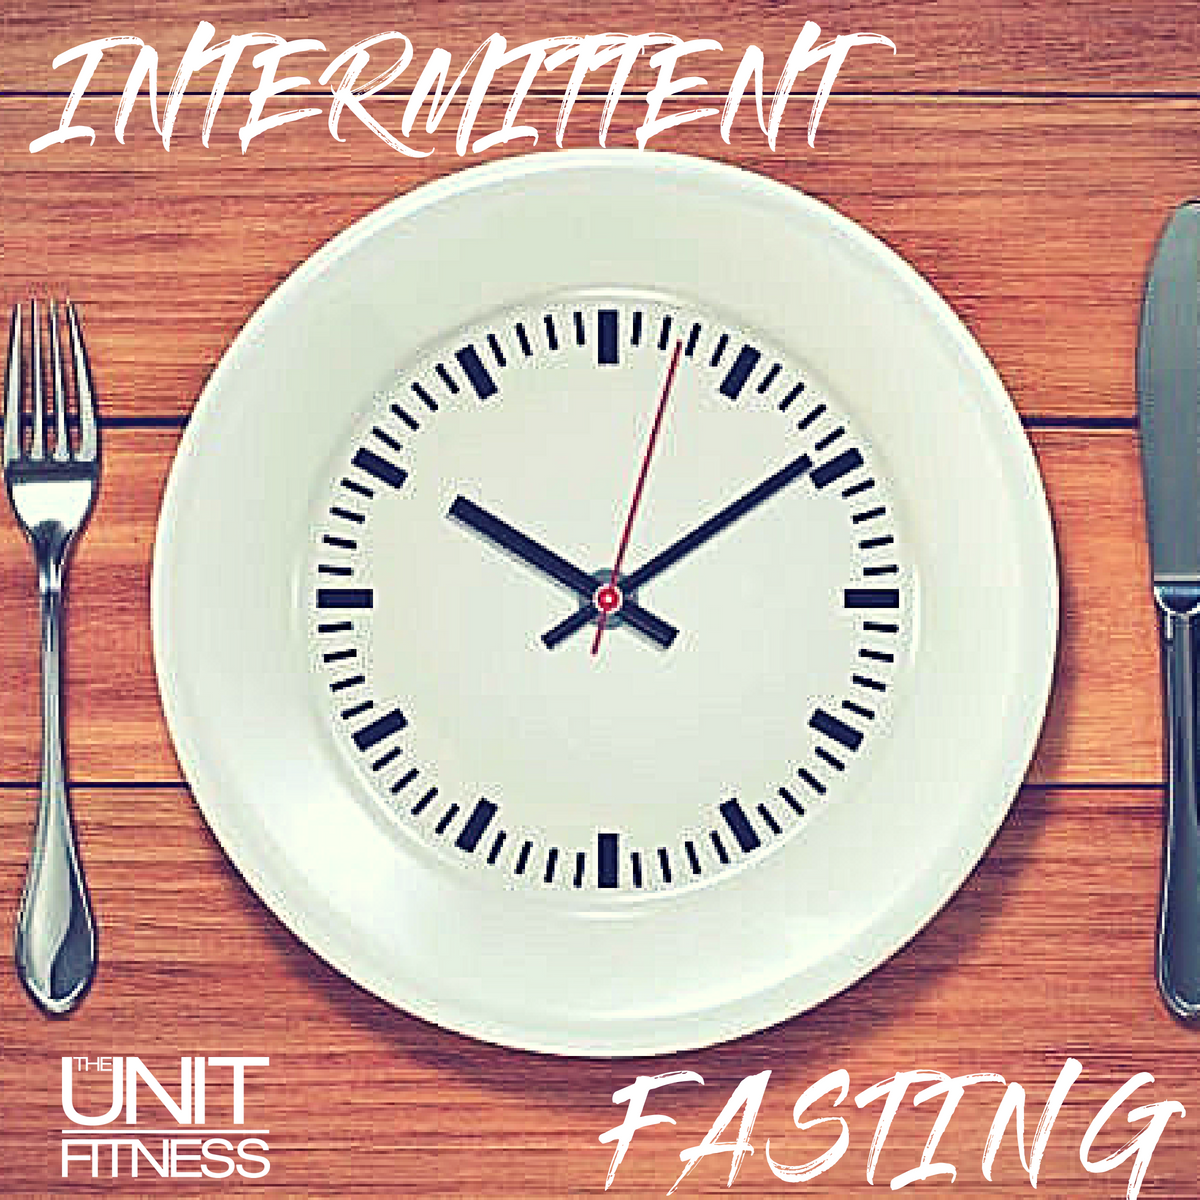 intermittent fasting benefits.png